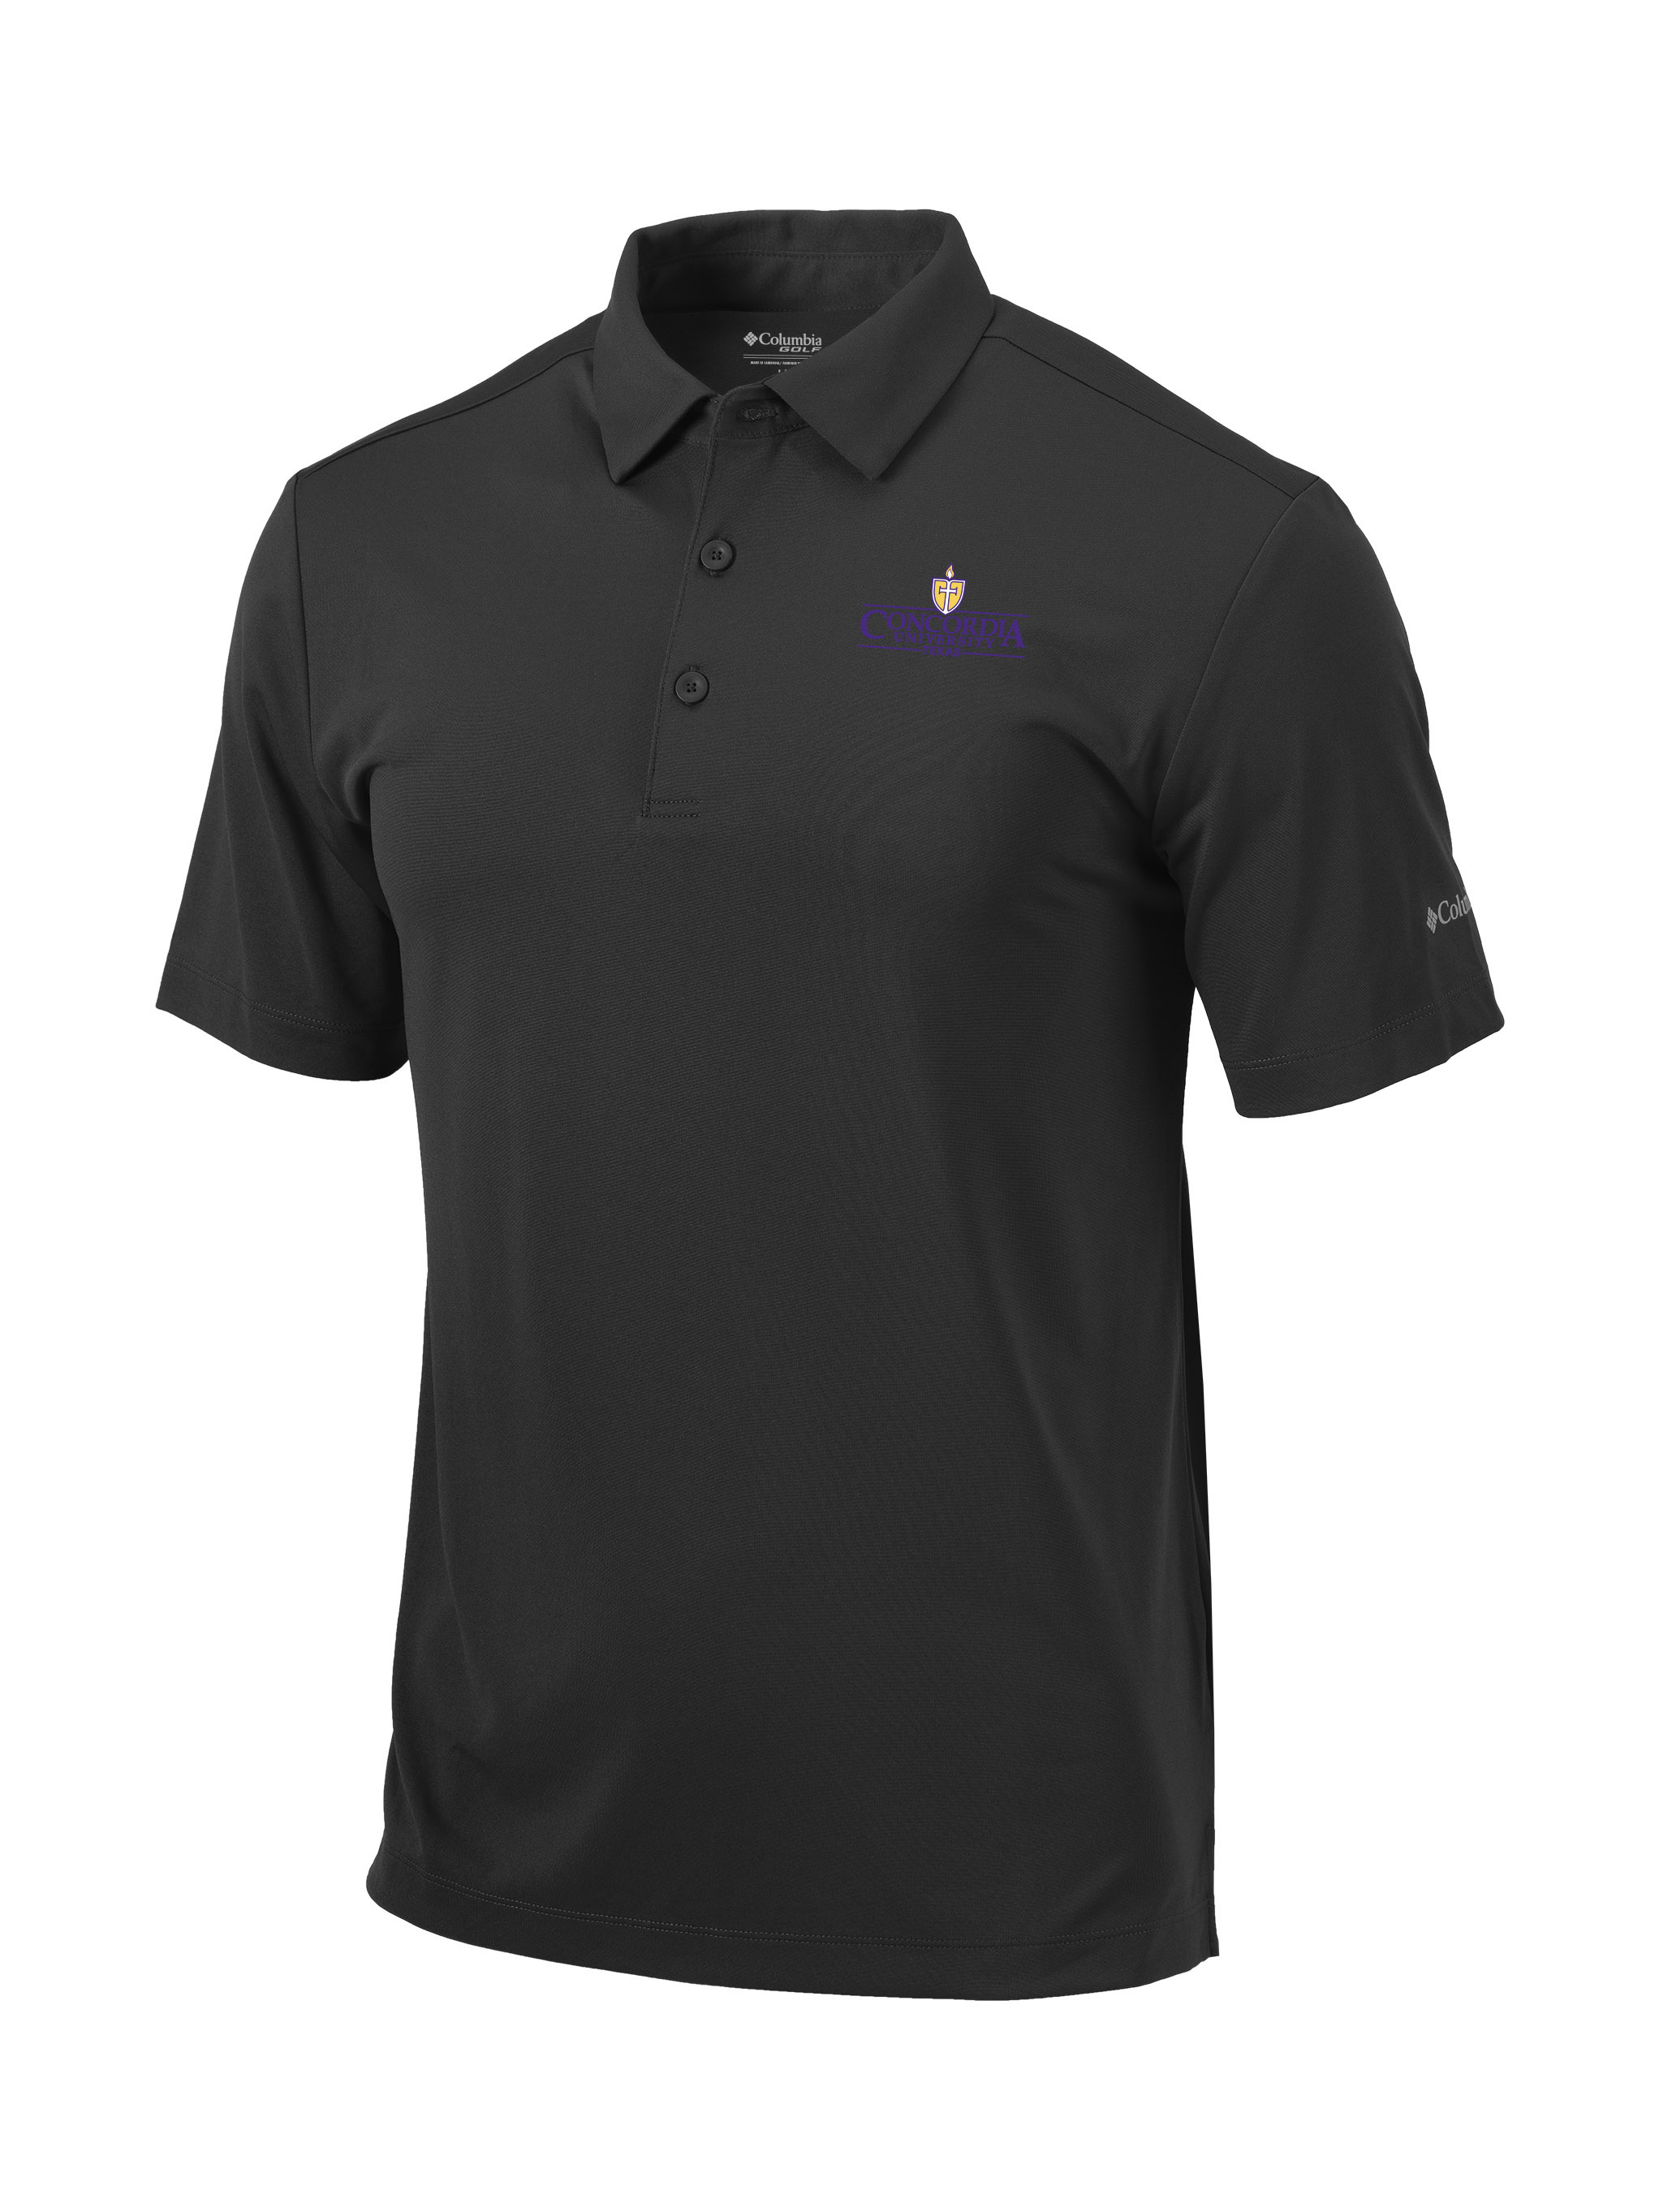 Columbia - Charcoal Omni Wick Polo